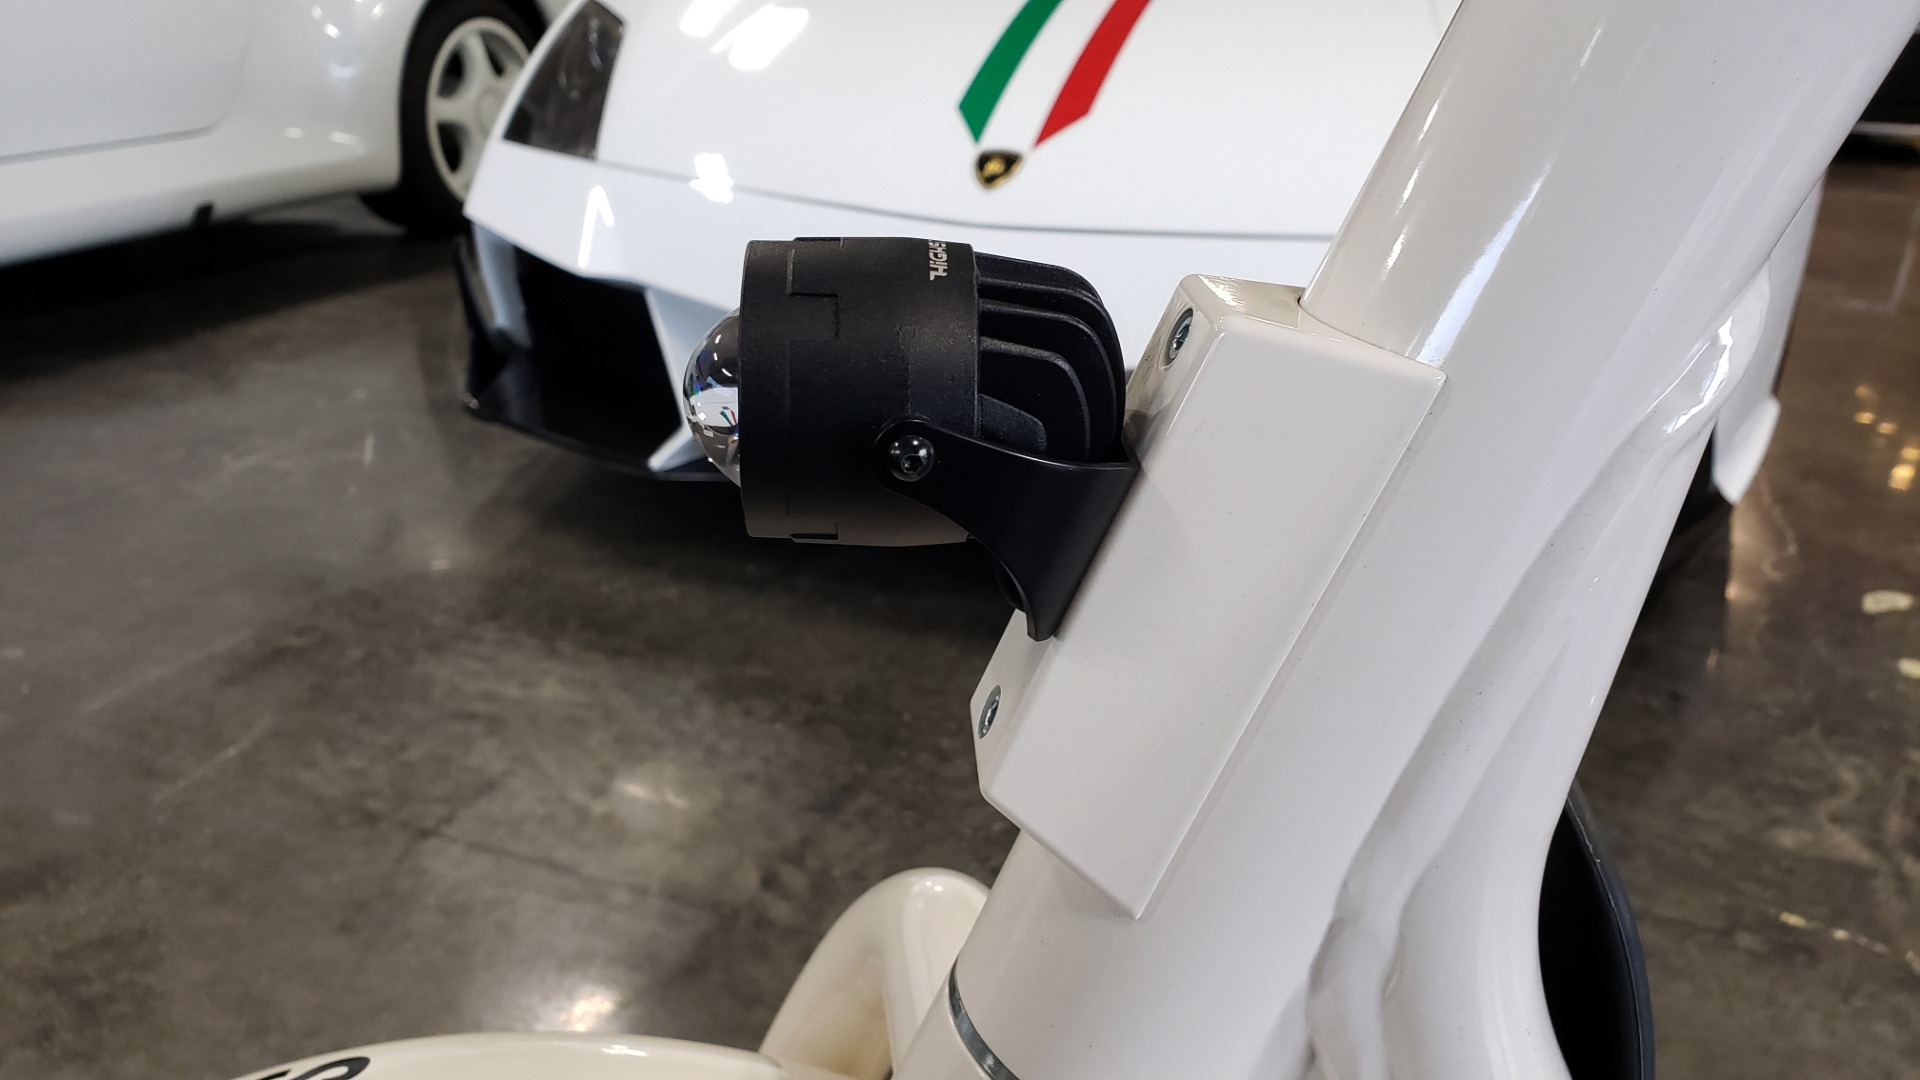 Used 2018 SCROOSER ELECTRIC SCOOTER SELF BALANCED / CUSTOM WHITE / 15.5 MPH / 34 MI RANGE for sale $1,699 at Formula Imports in Charlotte NC 28227 12